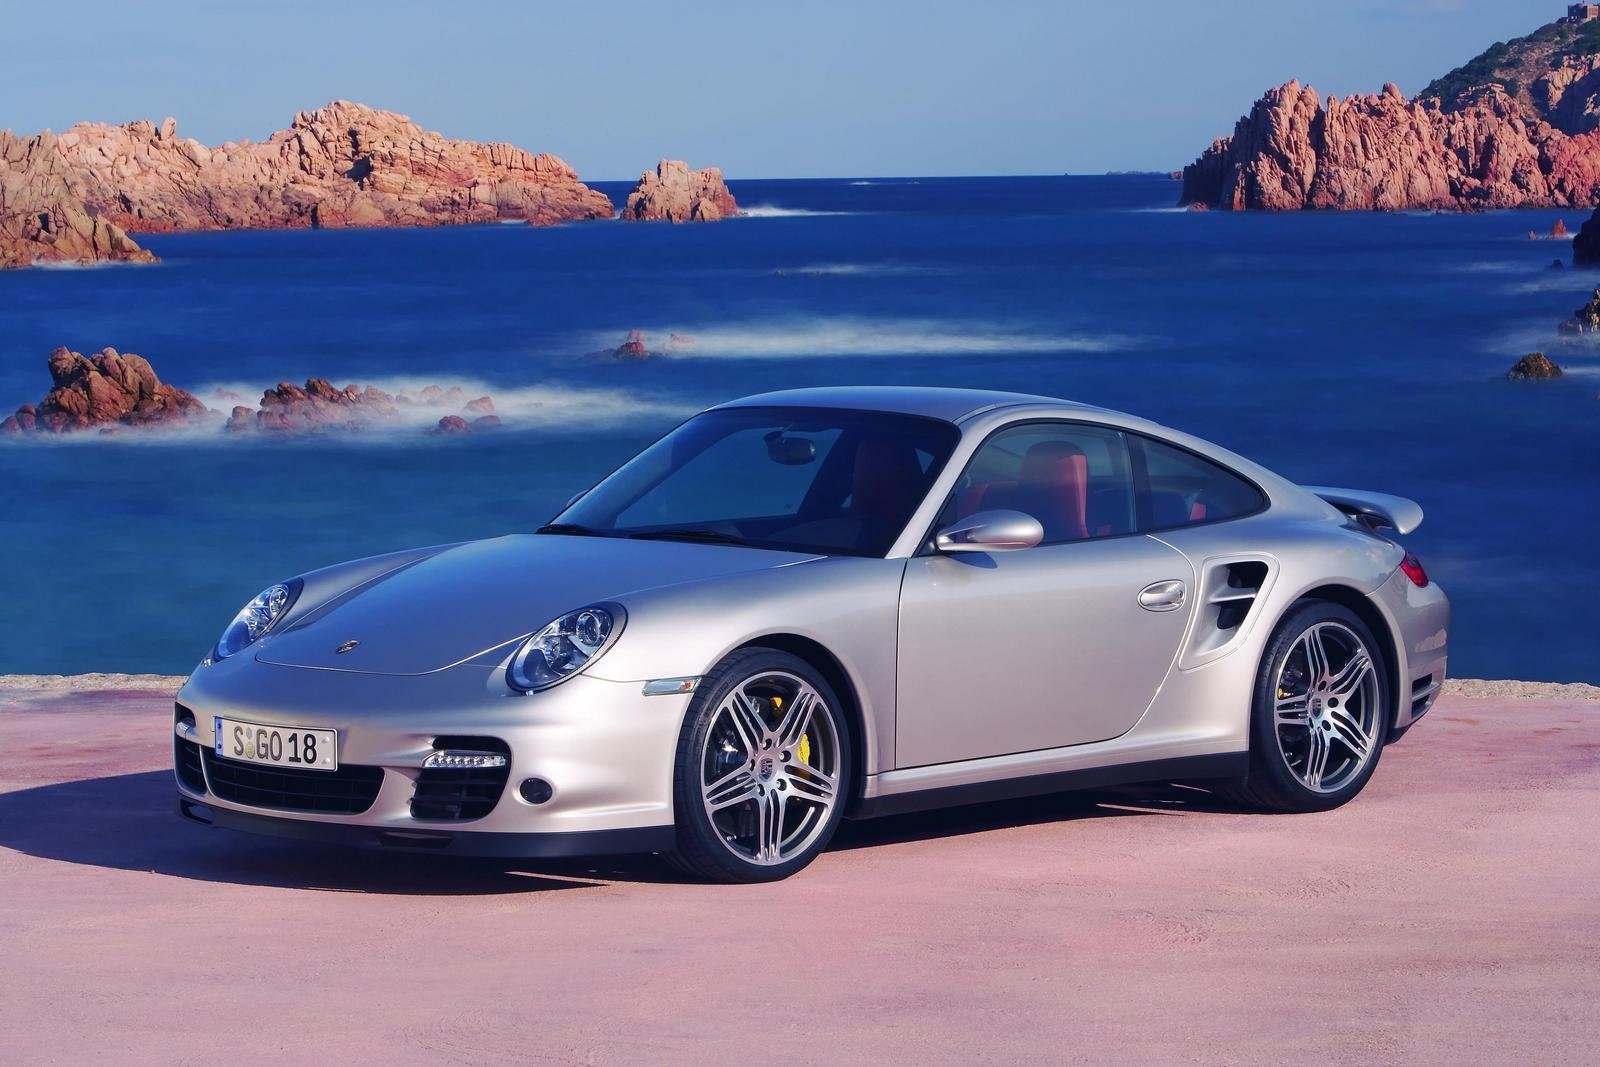 2007 porsche 911 turbo 997 picture 54752 car review top speed. Black Bedroom Furniture Sets. Home Design Ideas